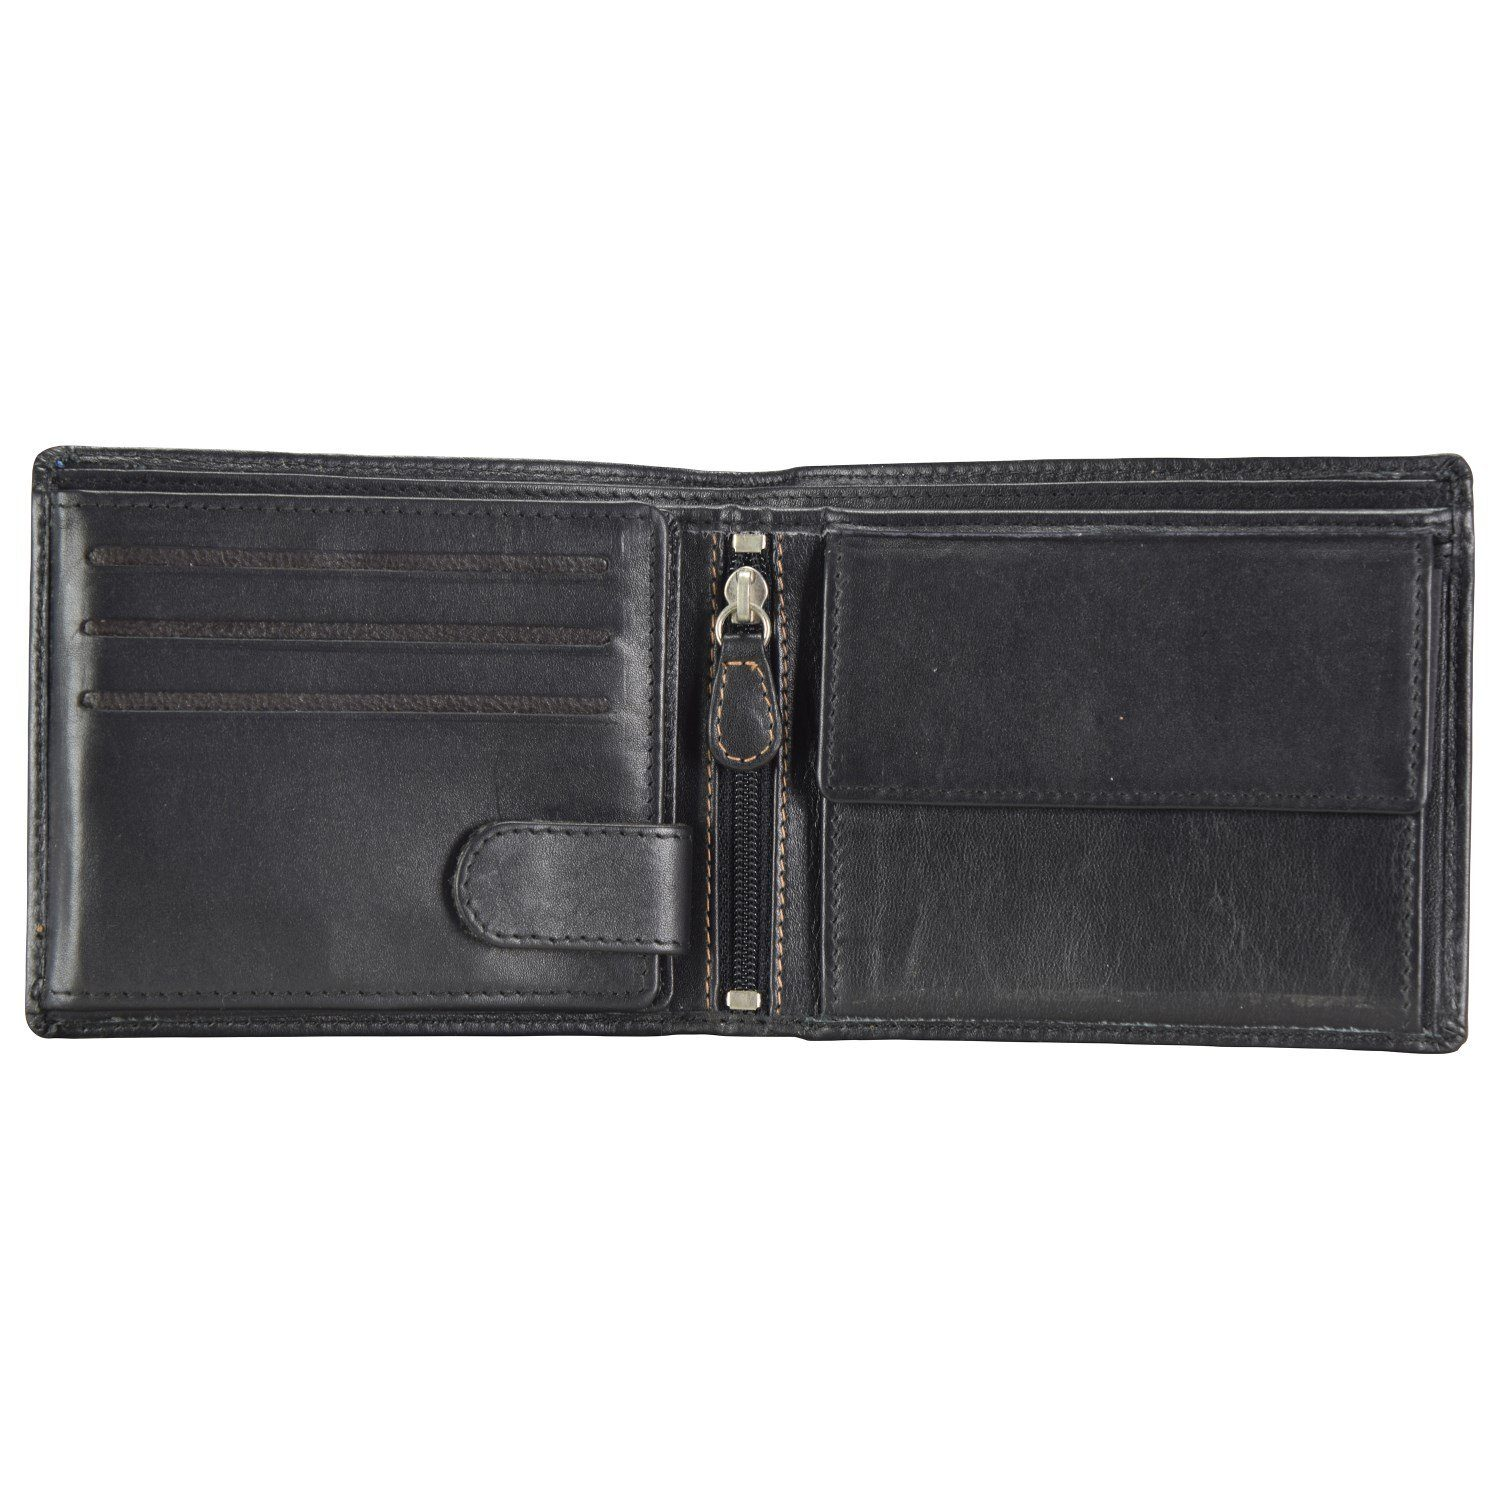 Maître M-Collection Merlin Giselher BillFold H9 Geldbörse Leder 12 cm